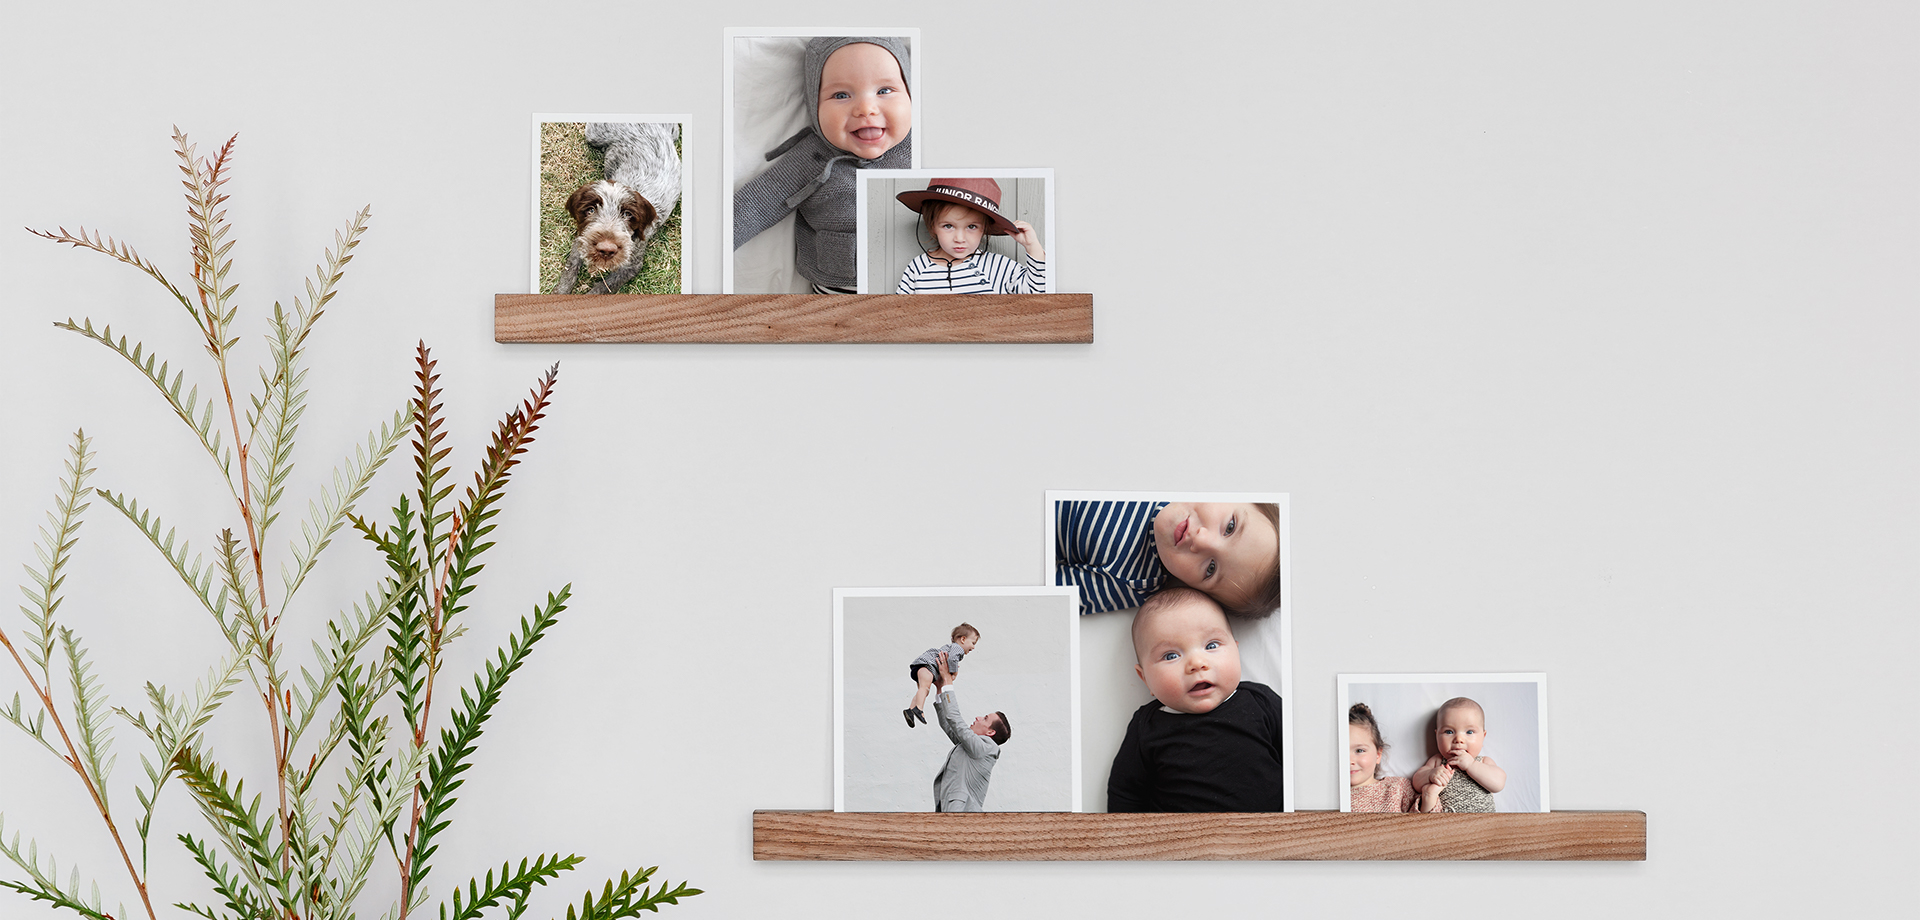 Photo prints on wooden ledges are one of many nursery wall decor ideas